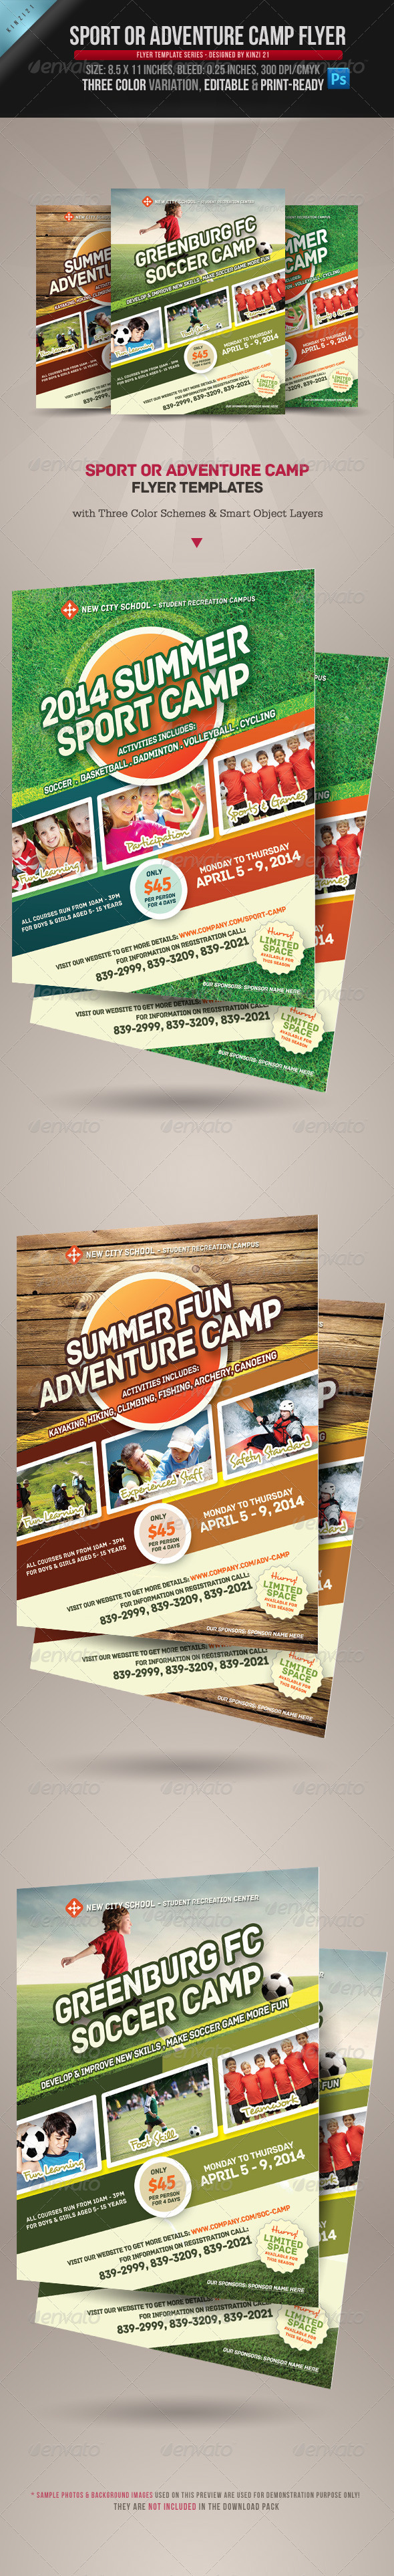 Sport or Adventure Camp Flyers - Sports Events